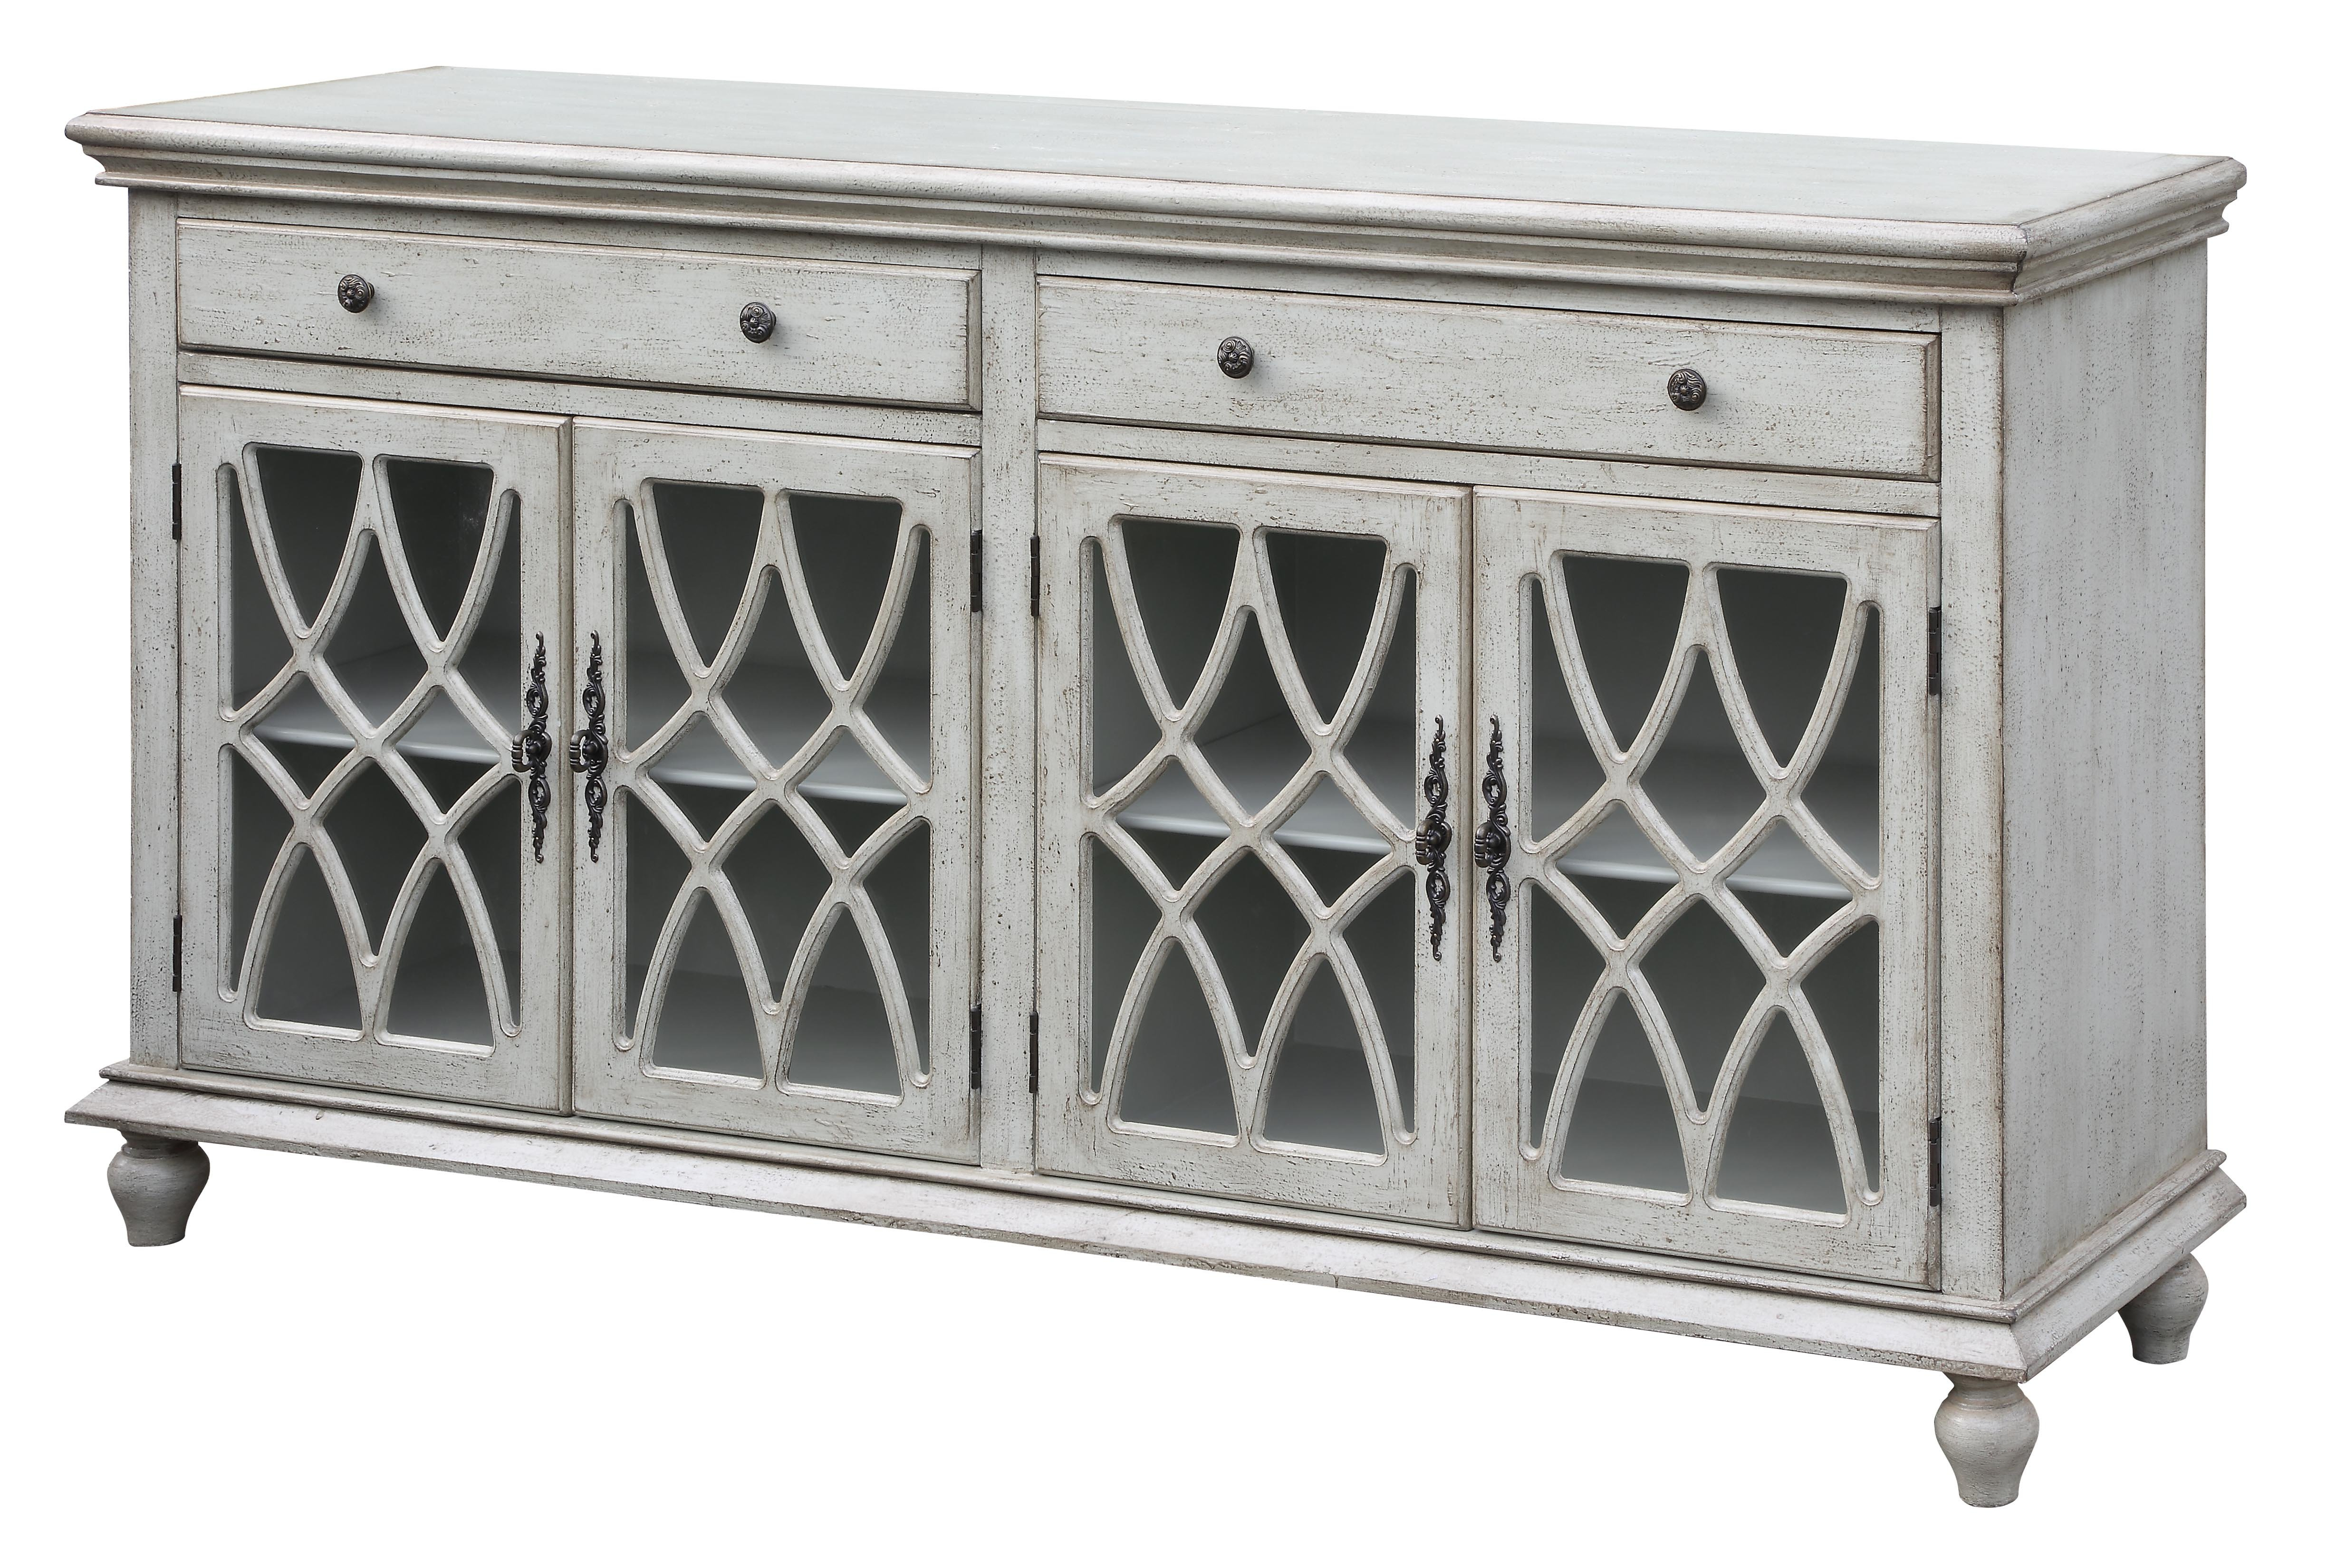 Grey Sideboards & Buffets   Joss & Main Intended For Casolino Sideboards (Gallery 10 of 20)